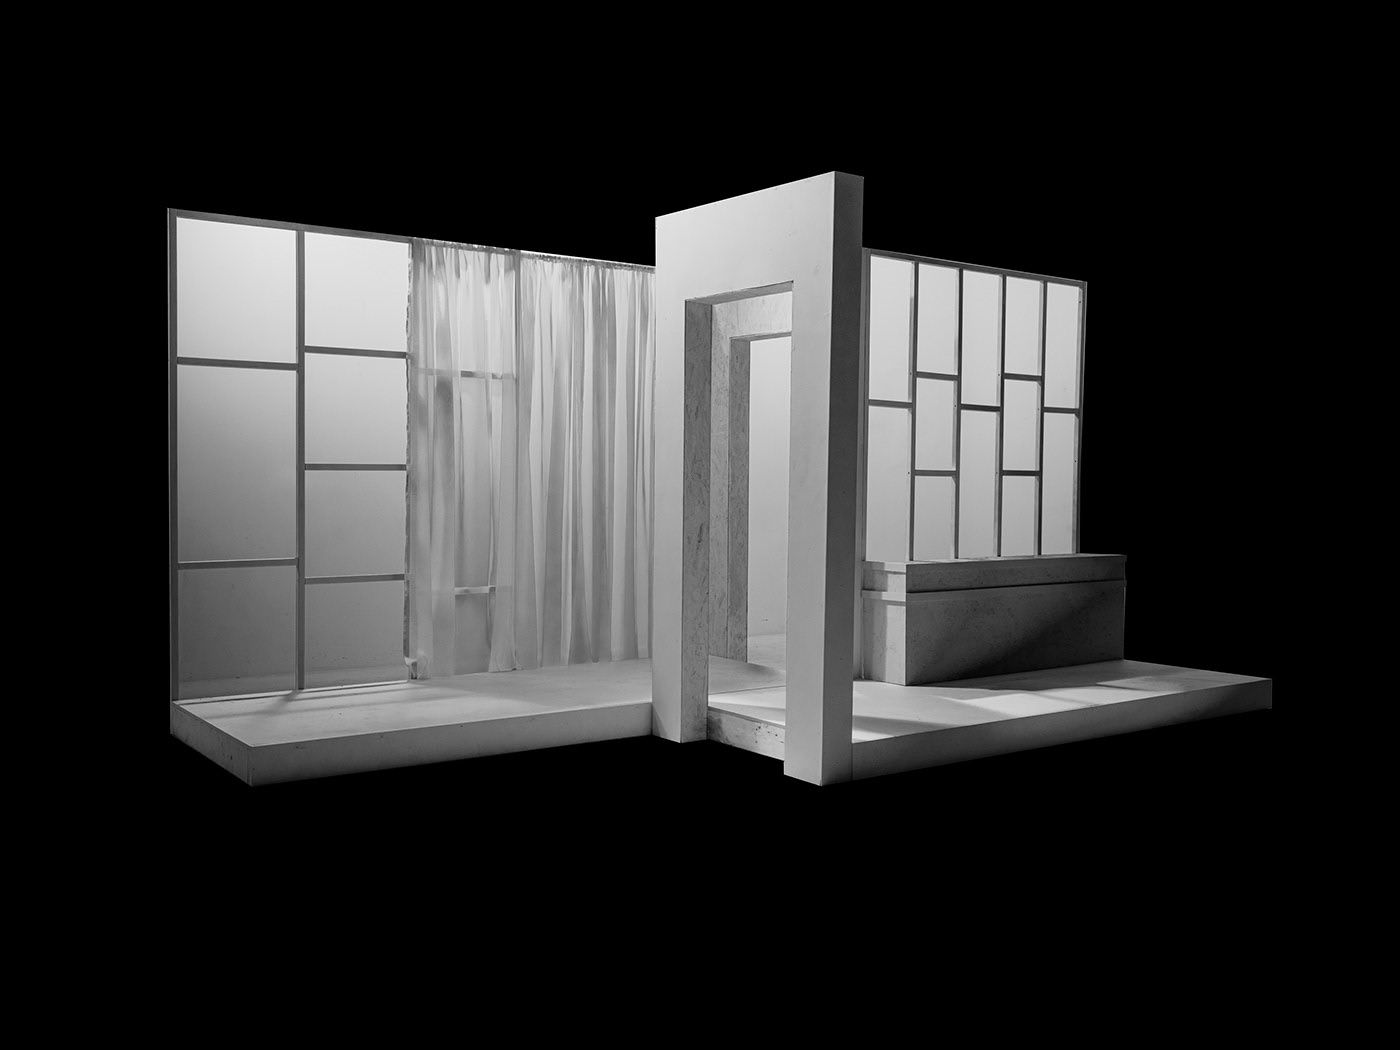 stage built for Fabrikated Fantasy by Fabrikate by Studio TB photographed by Simon Duhamel